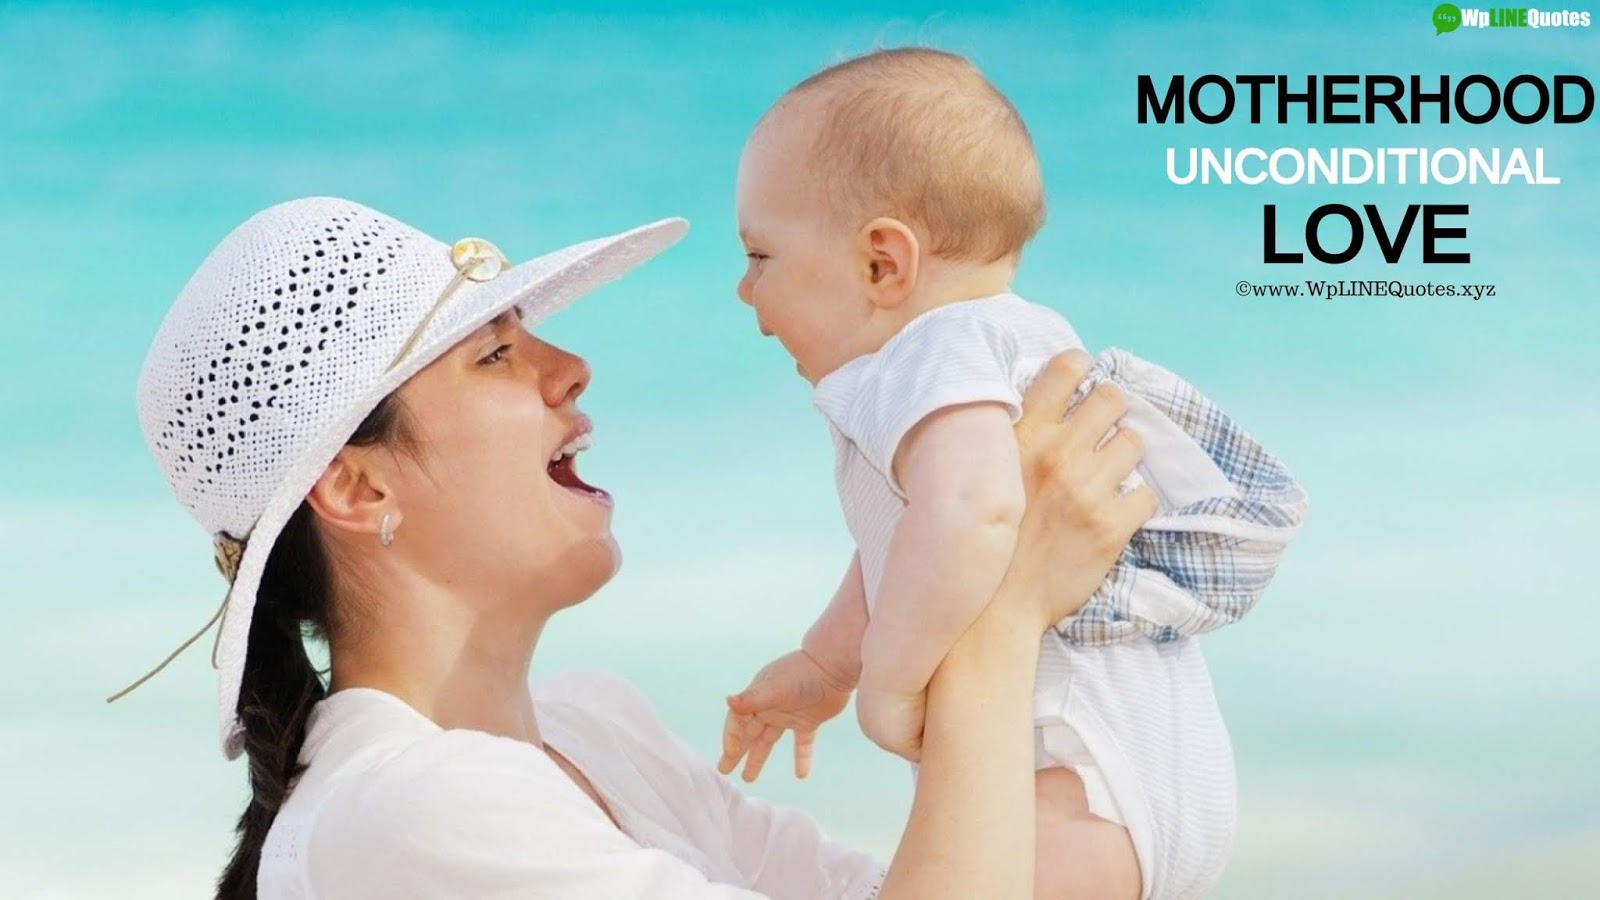 National Safe Motherhood Day Quotes, Wishes, Messages, History, Images, Wallpaper